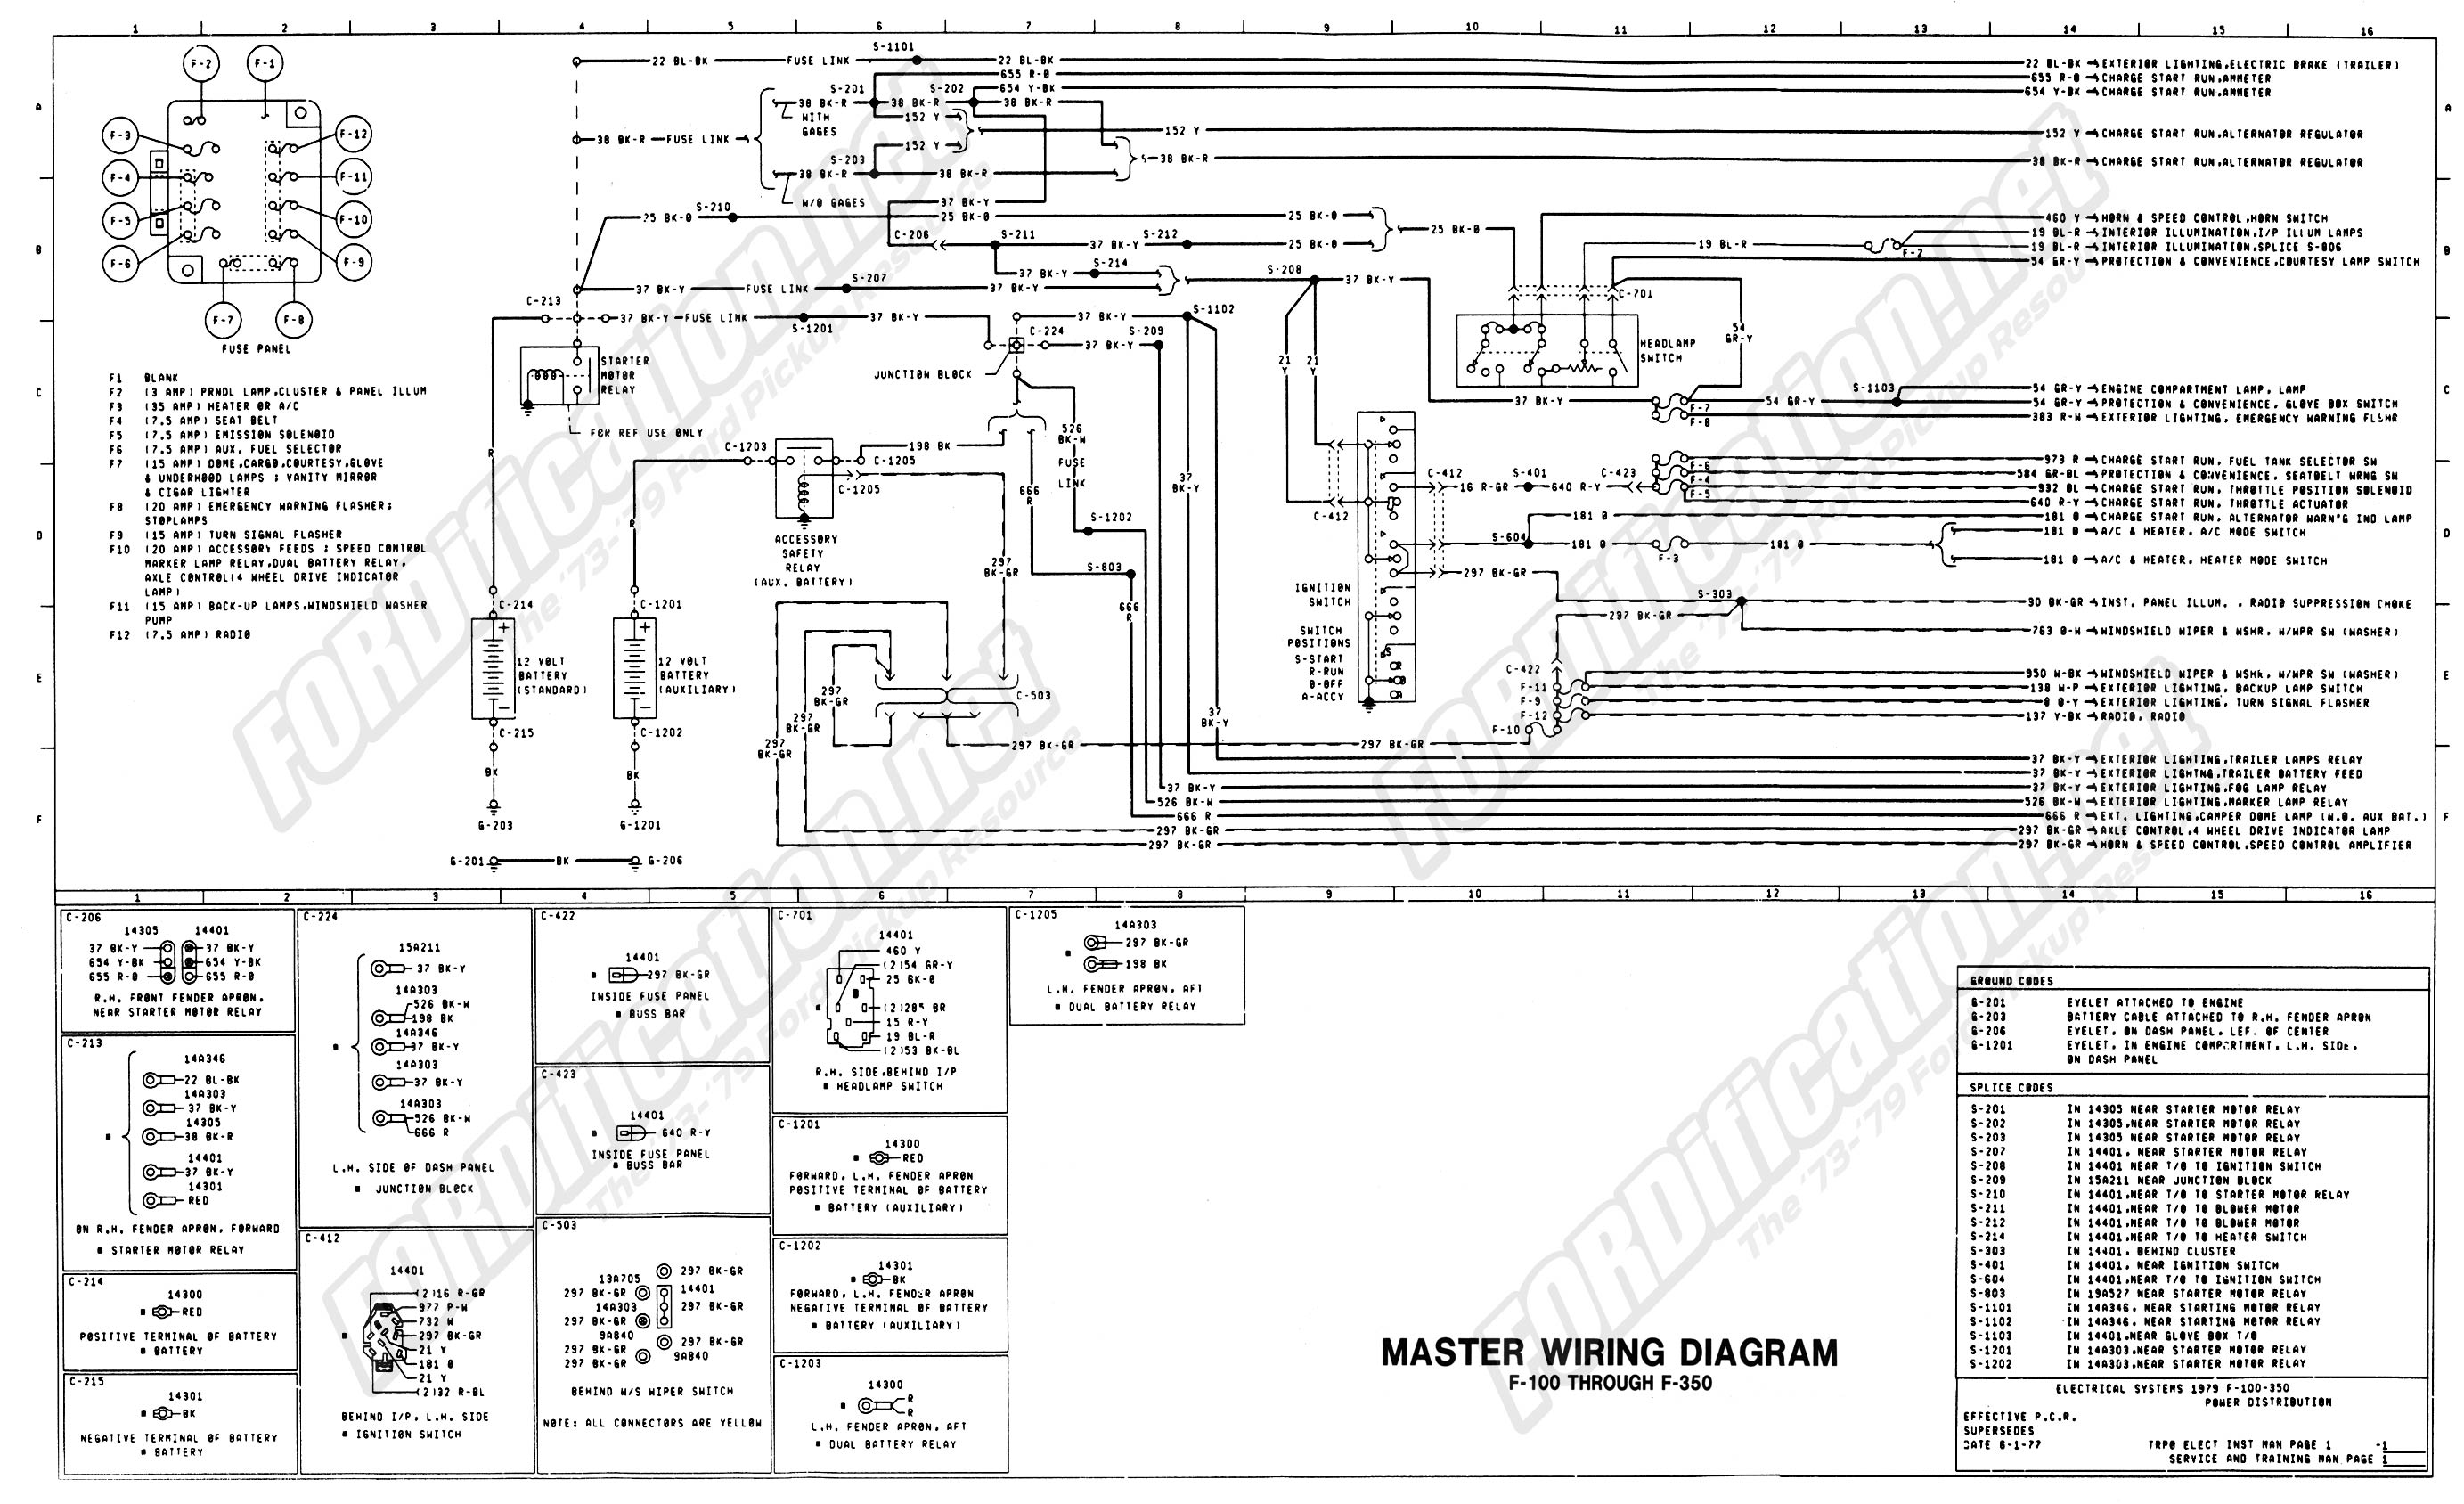 wiring_79master_1of9 1973 1979 ford truck wiring diagrams & schematics fordification net ford ignition switch diagram at webbmarketing.co